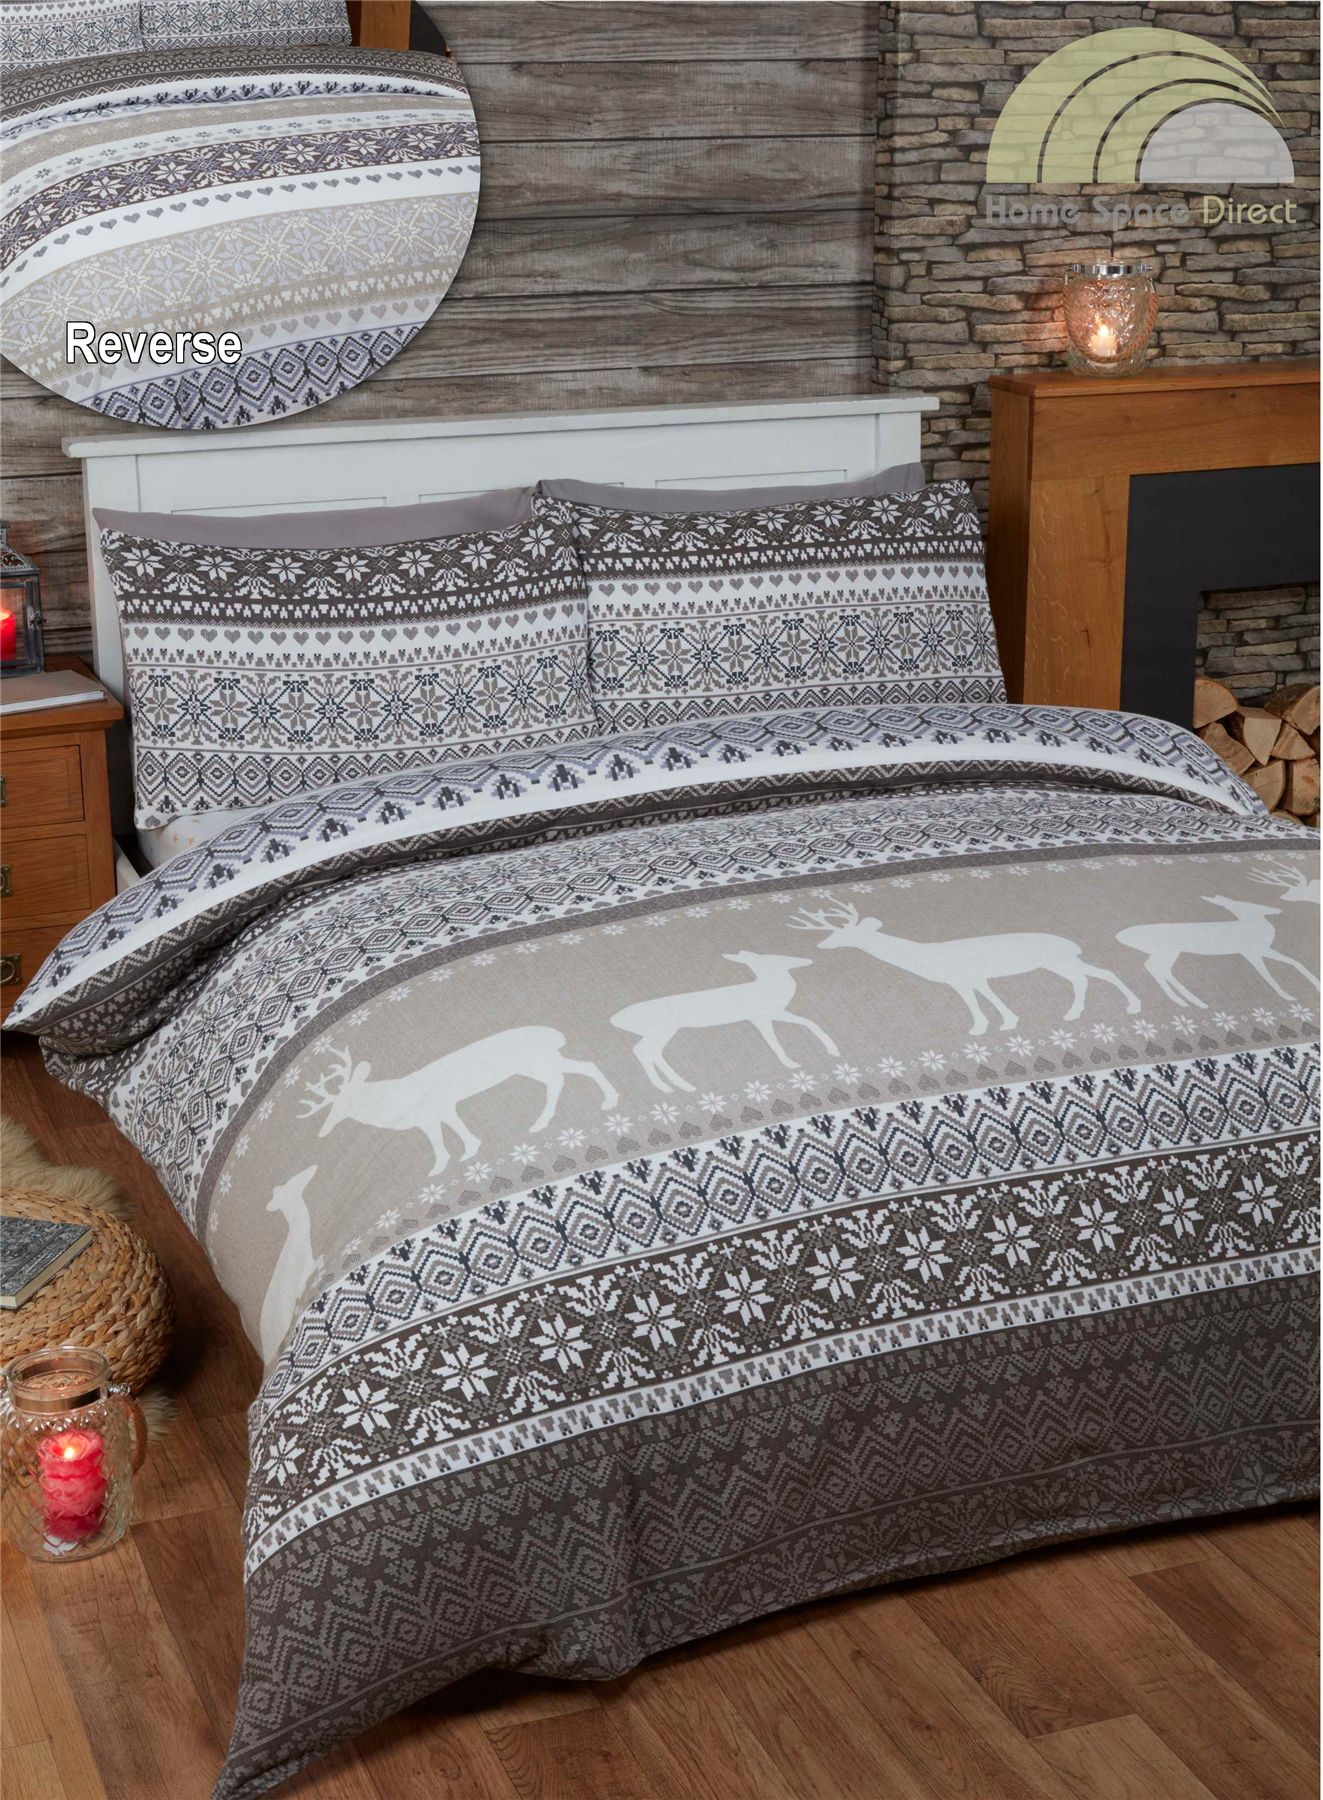 100 cotton flannelette quilt duvet cover bedding bed sets christmas winter new ebay. Black Bedroom Furniture Sets. Home Design Ideas